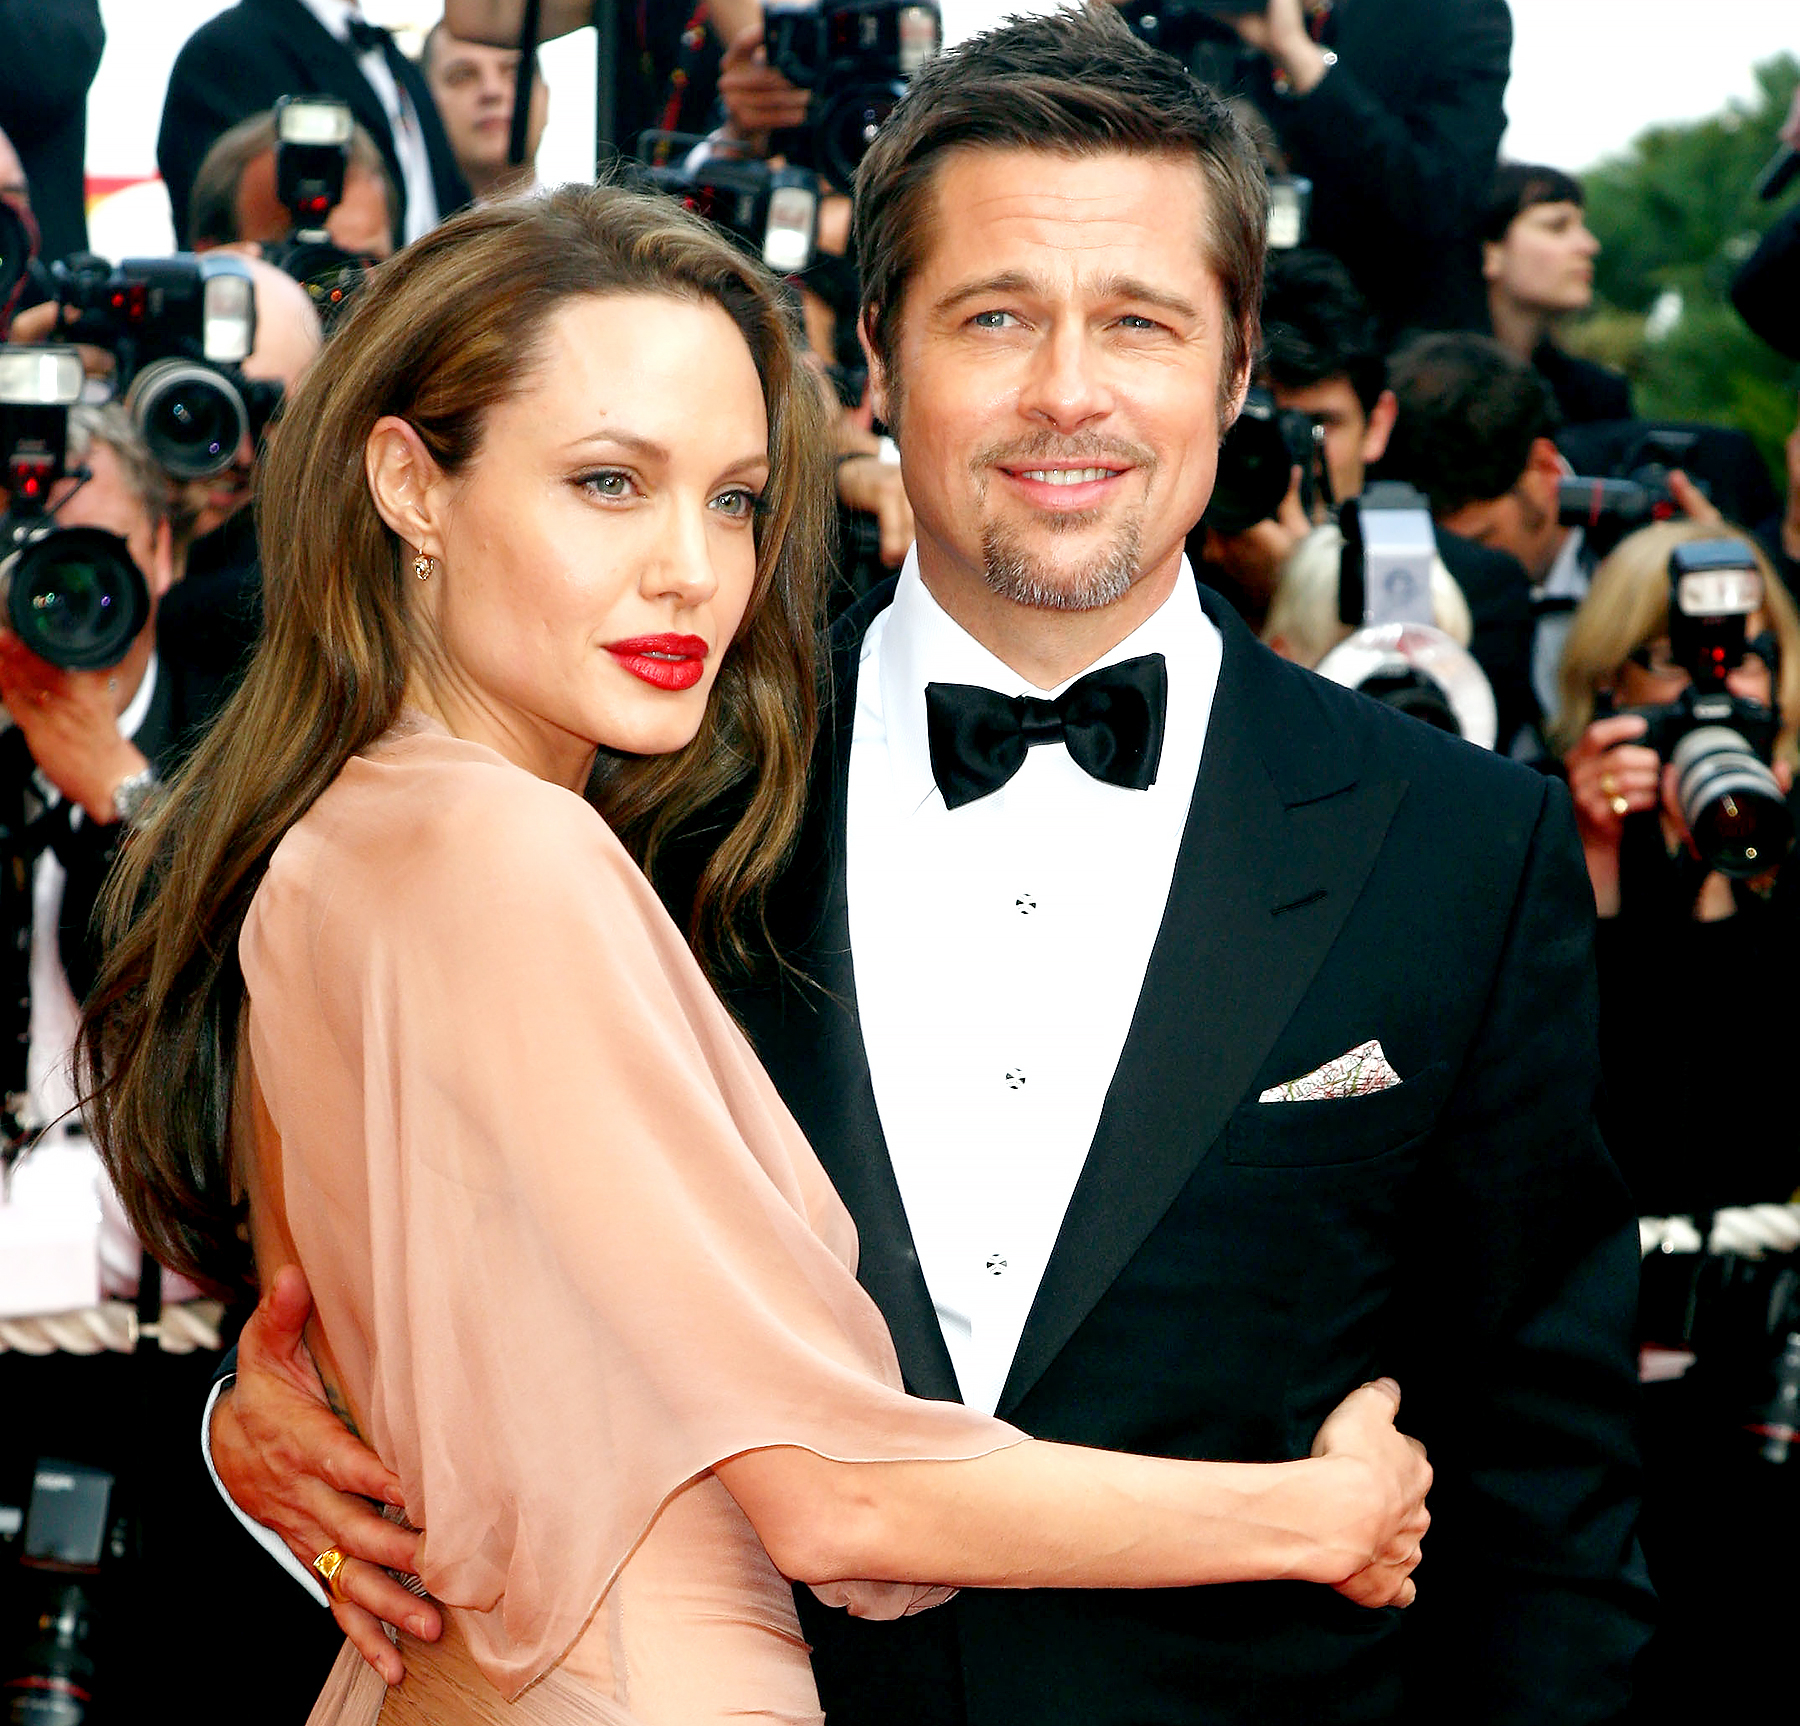 Brad Pitt and Angelina Jolie attend the Inglourious Basterds Premiere held at the Palais Des Festivals during the 62nd International Cannes Film Festival on May 20th, 2009 in Cannes, France.